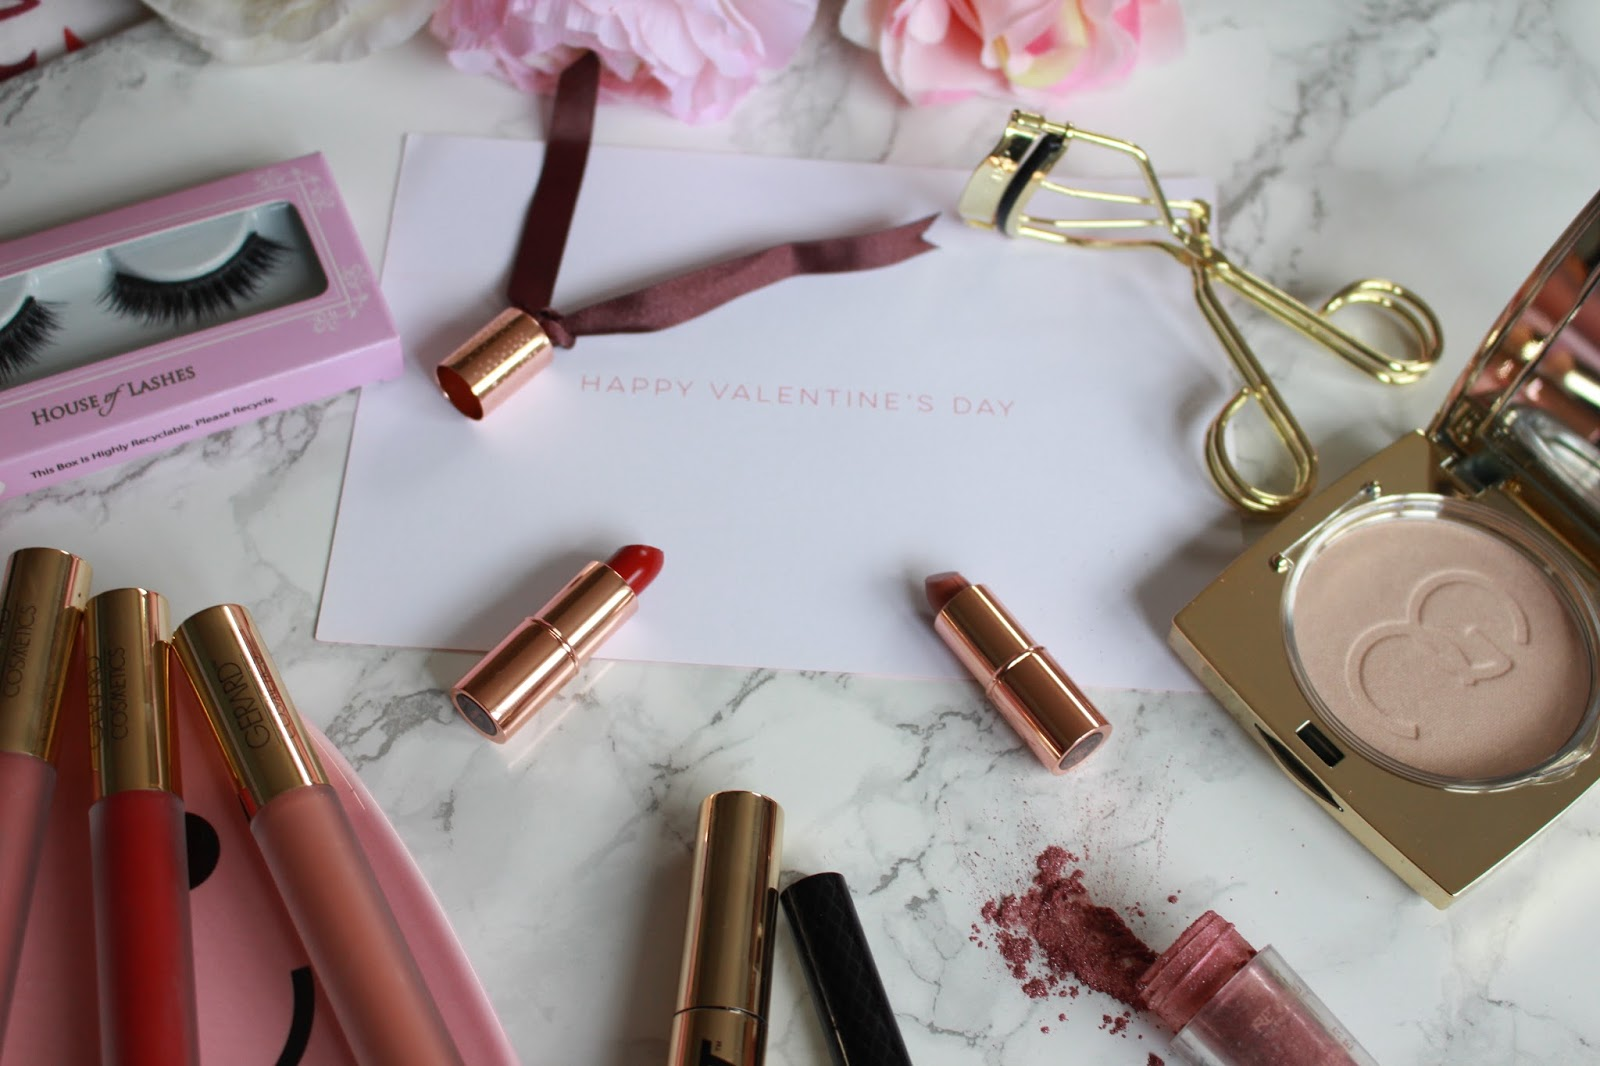 Valentines Makeup, House of lashes review, charlotte tilbury lipsticks, peony, happy valentines day, gerard cosmetics Serenity , gerard cosmetics aphrodite, make up revolution eyeshadow, valentines make up tutorial, gerard cosmetics matte, gerard cosmetics highlighter, gerard cosmetics